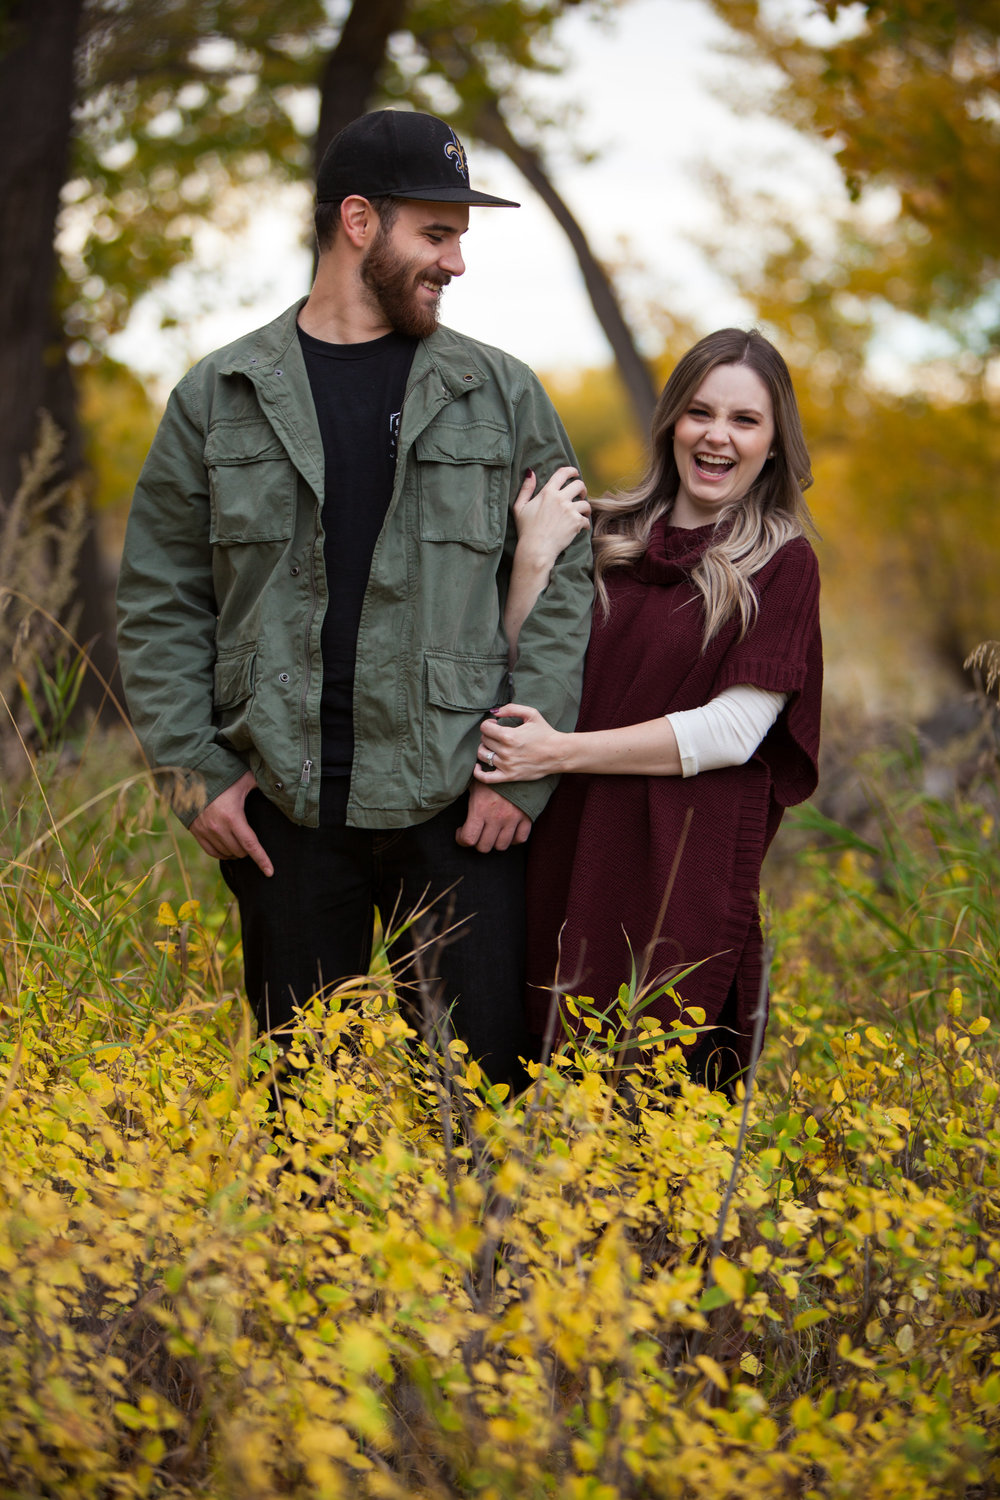 Chasing Autumn Photography - Medicine Hat Photography, Calgary Wedding Photography, Elkwater Wedding Photography, Saskatchewan Wedding, Lethbridge Wedding, Lethbridge Photography